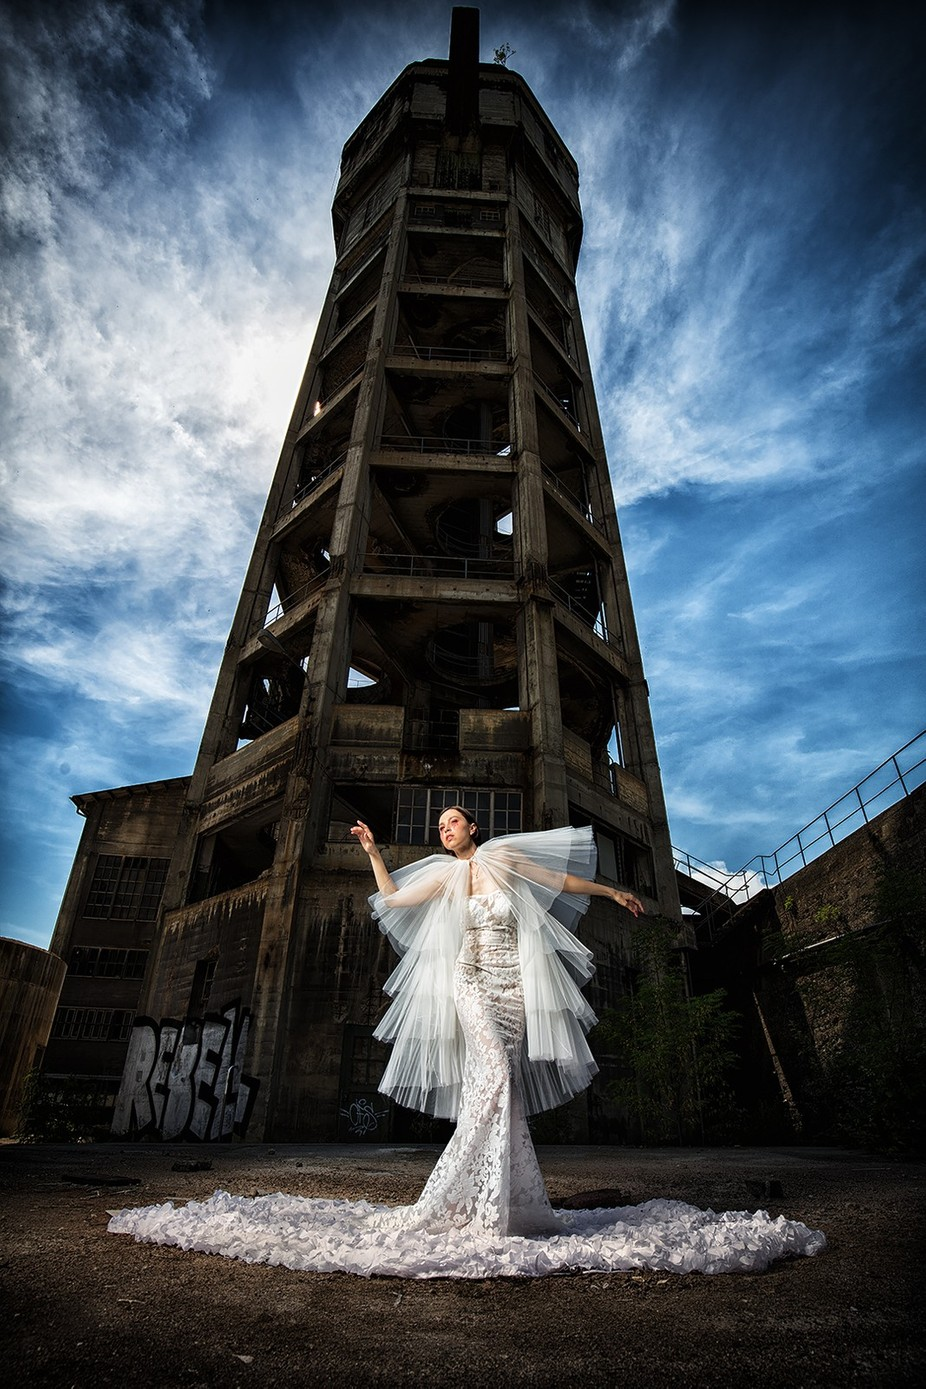 the tower by christiangigerphotography - Weddings And Fashion Photo Contest